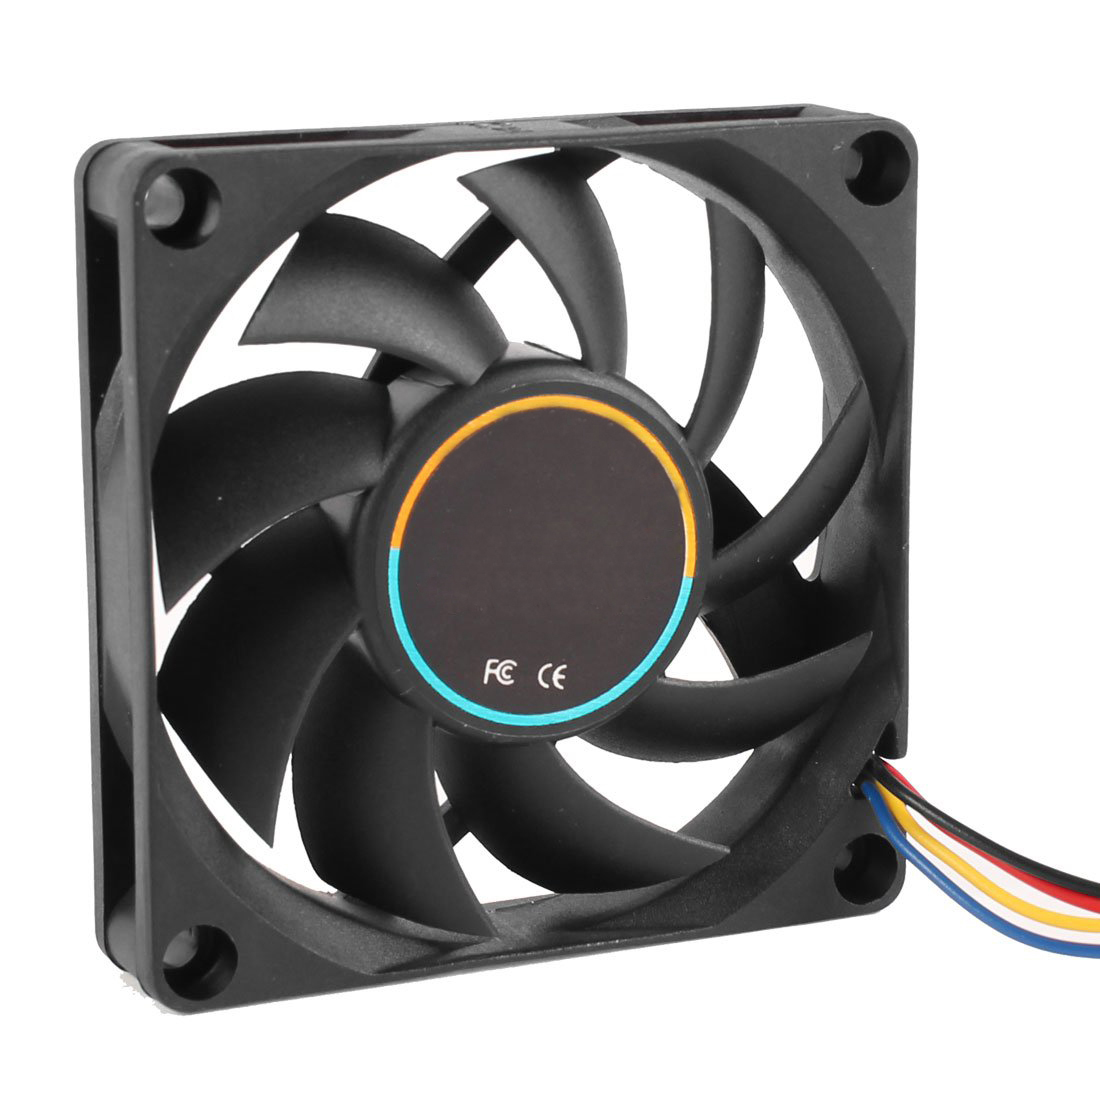 Blade Quantity: 9 Rarido Hydro Bearing 4 Pin 12V DC 70x70x15mm Black Compuer Fan Cooler Brushless Cooling Blower Fan for Computer